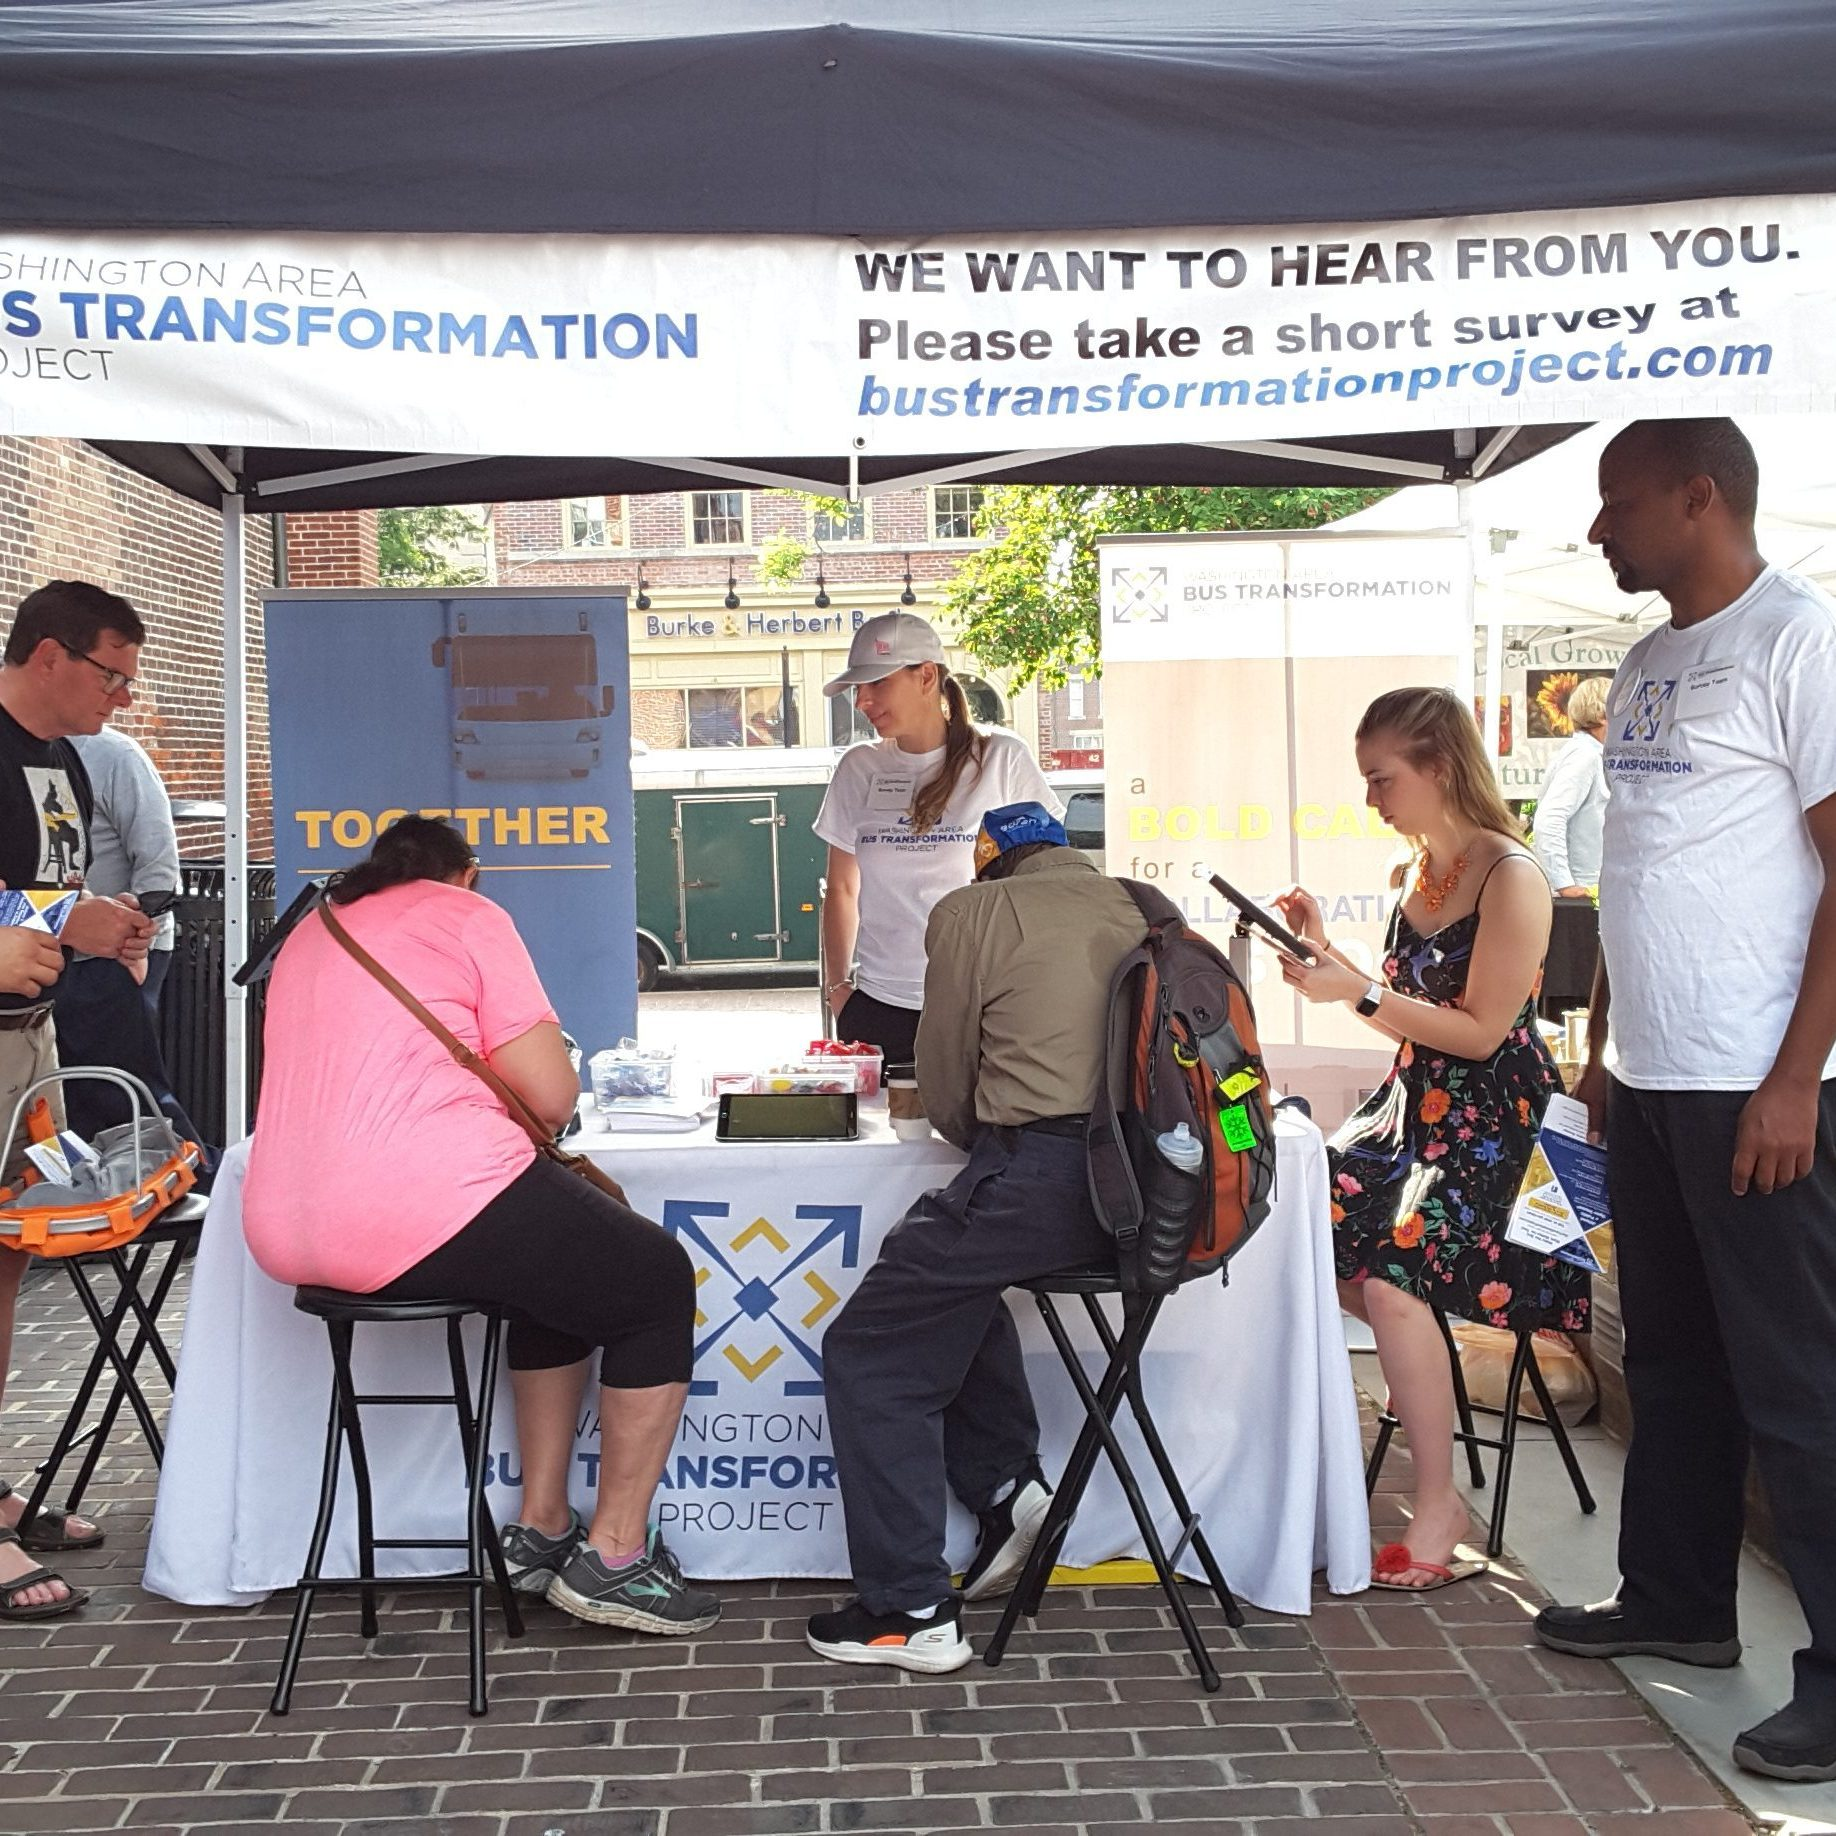 People gathered at the old town farmers market popup event booth